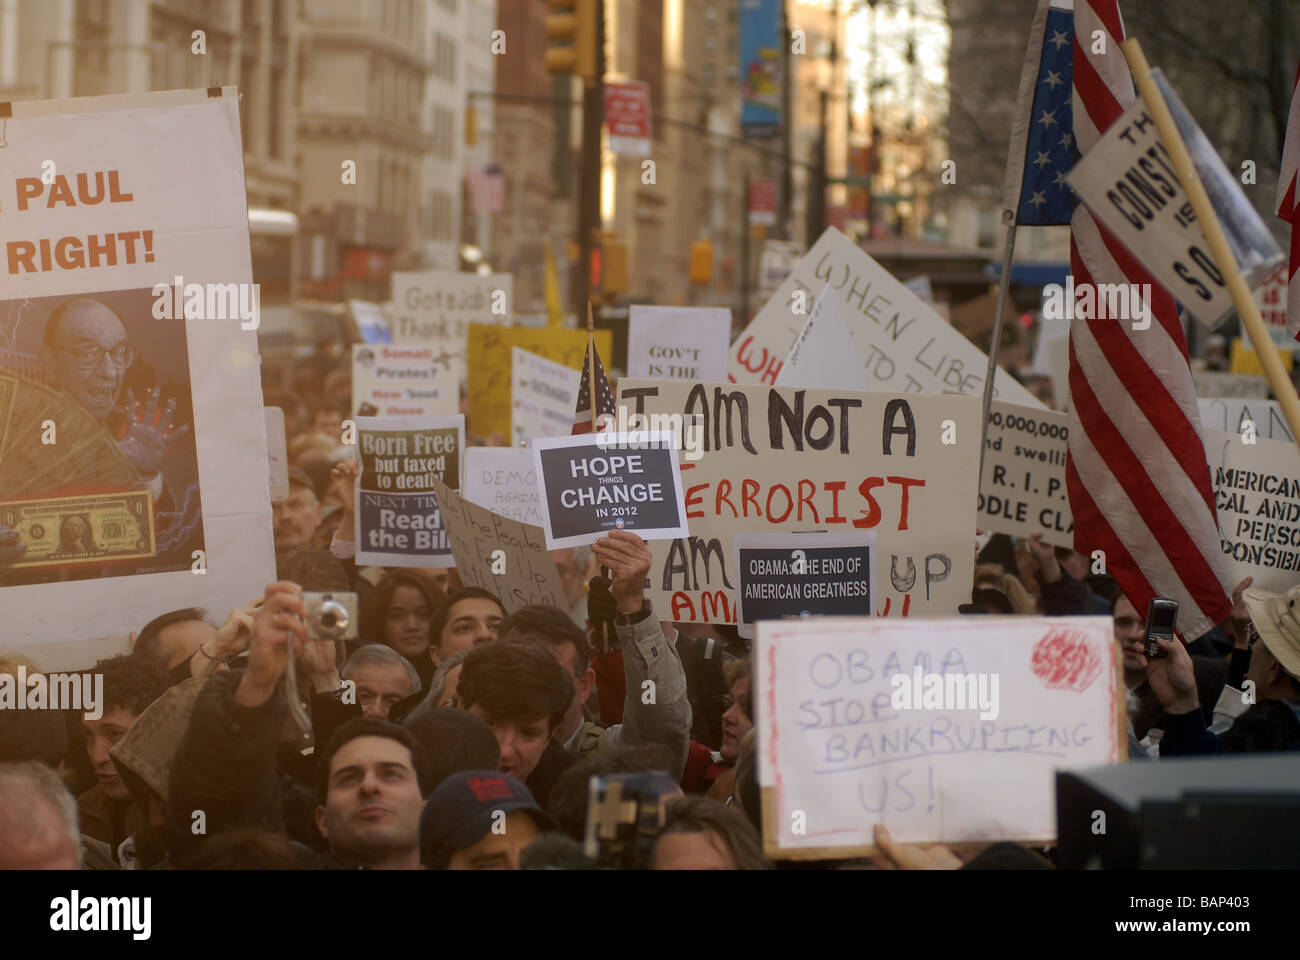 Thousands gather in City Hall Park in New York for a Tax Day Tea Party protest - Stock Image